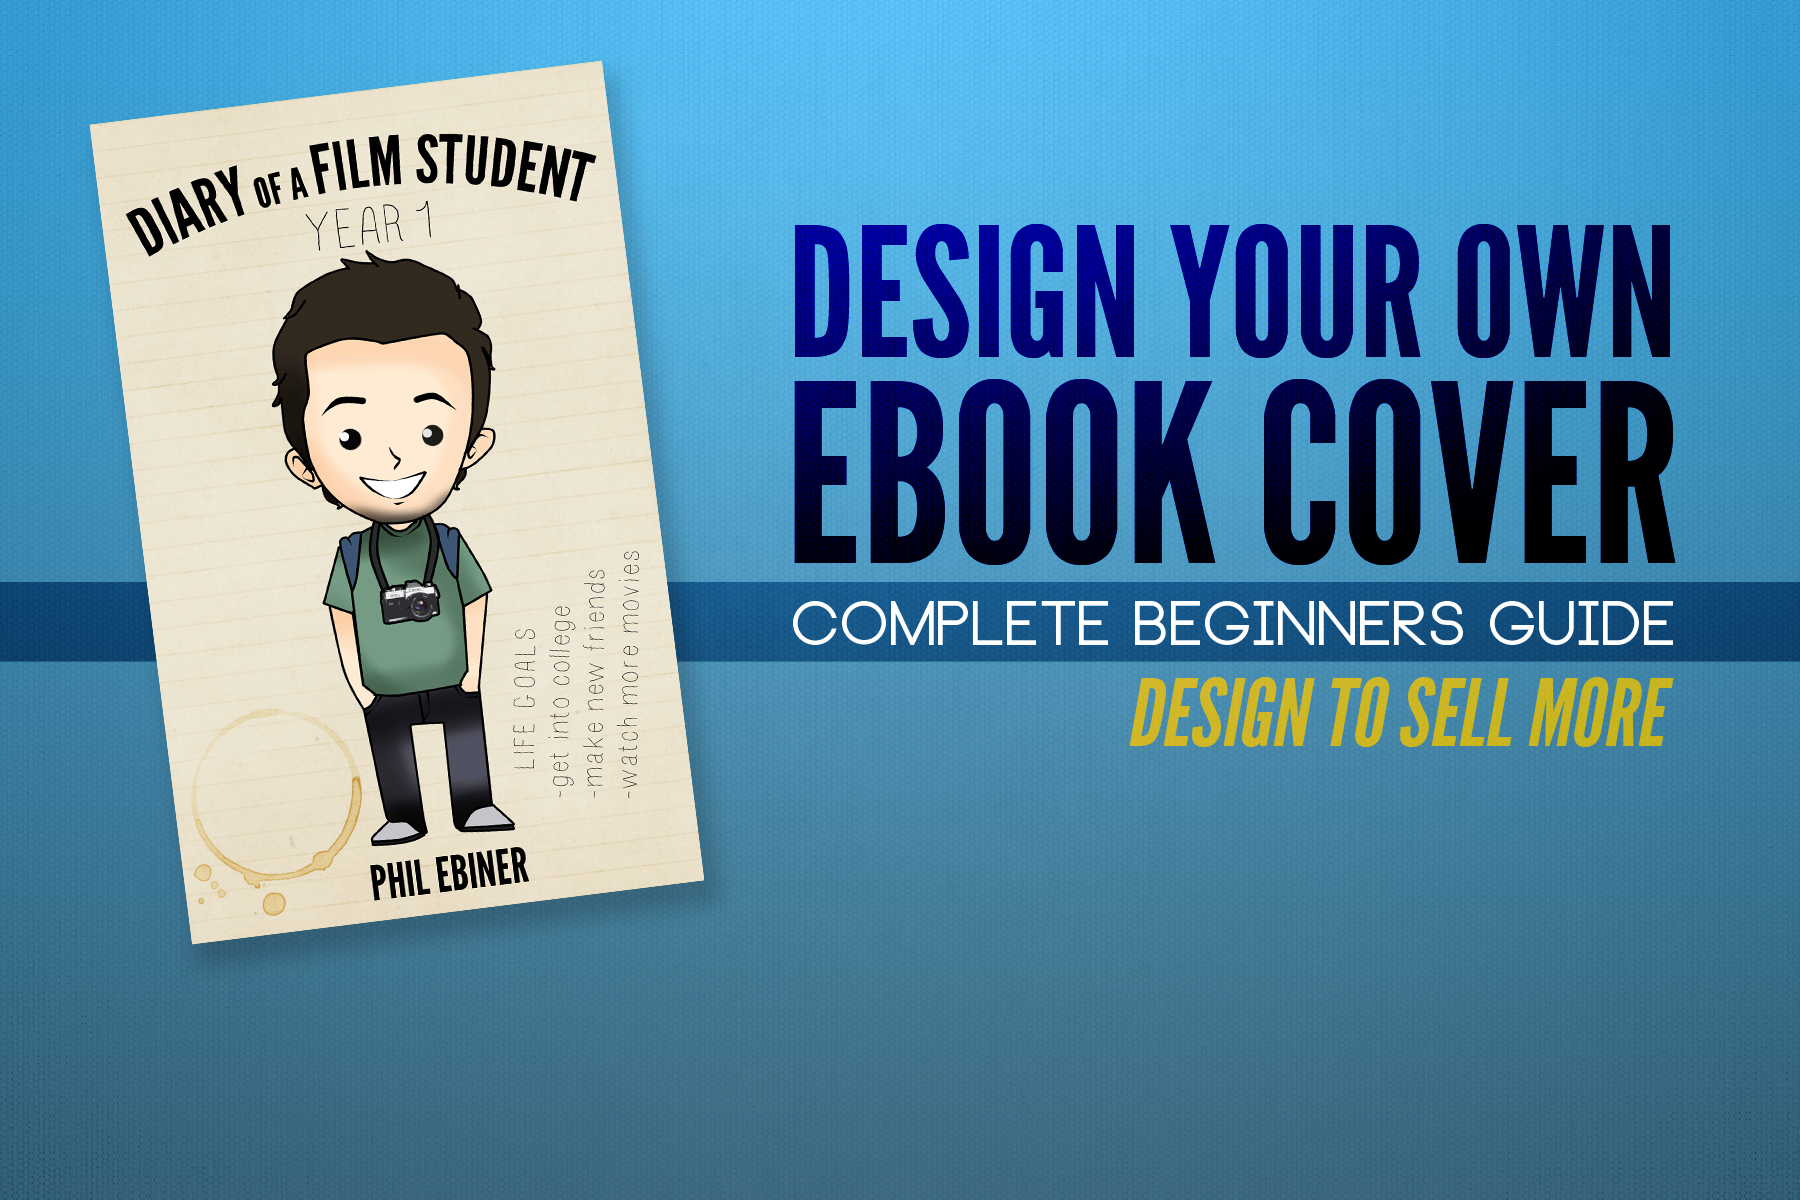 Book Cover Design In Bangladesh : Design your own ebook cover that sells phil ebiner